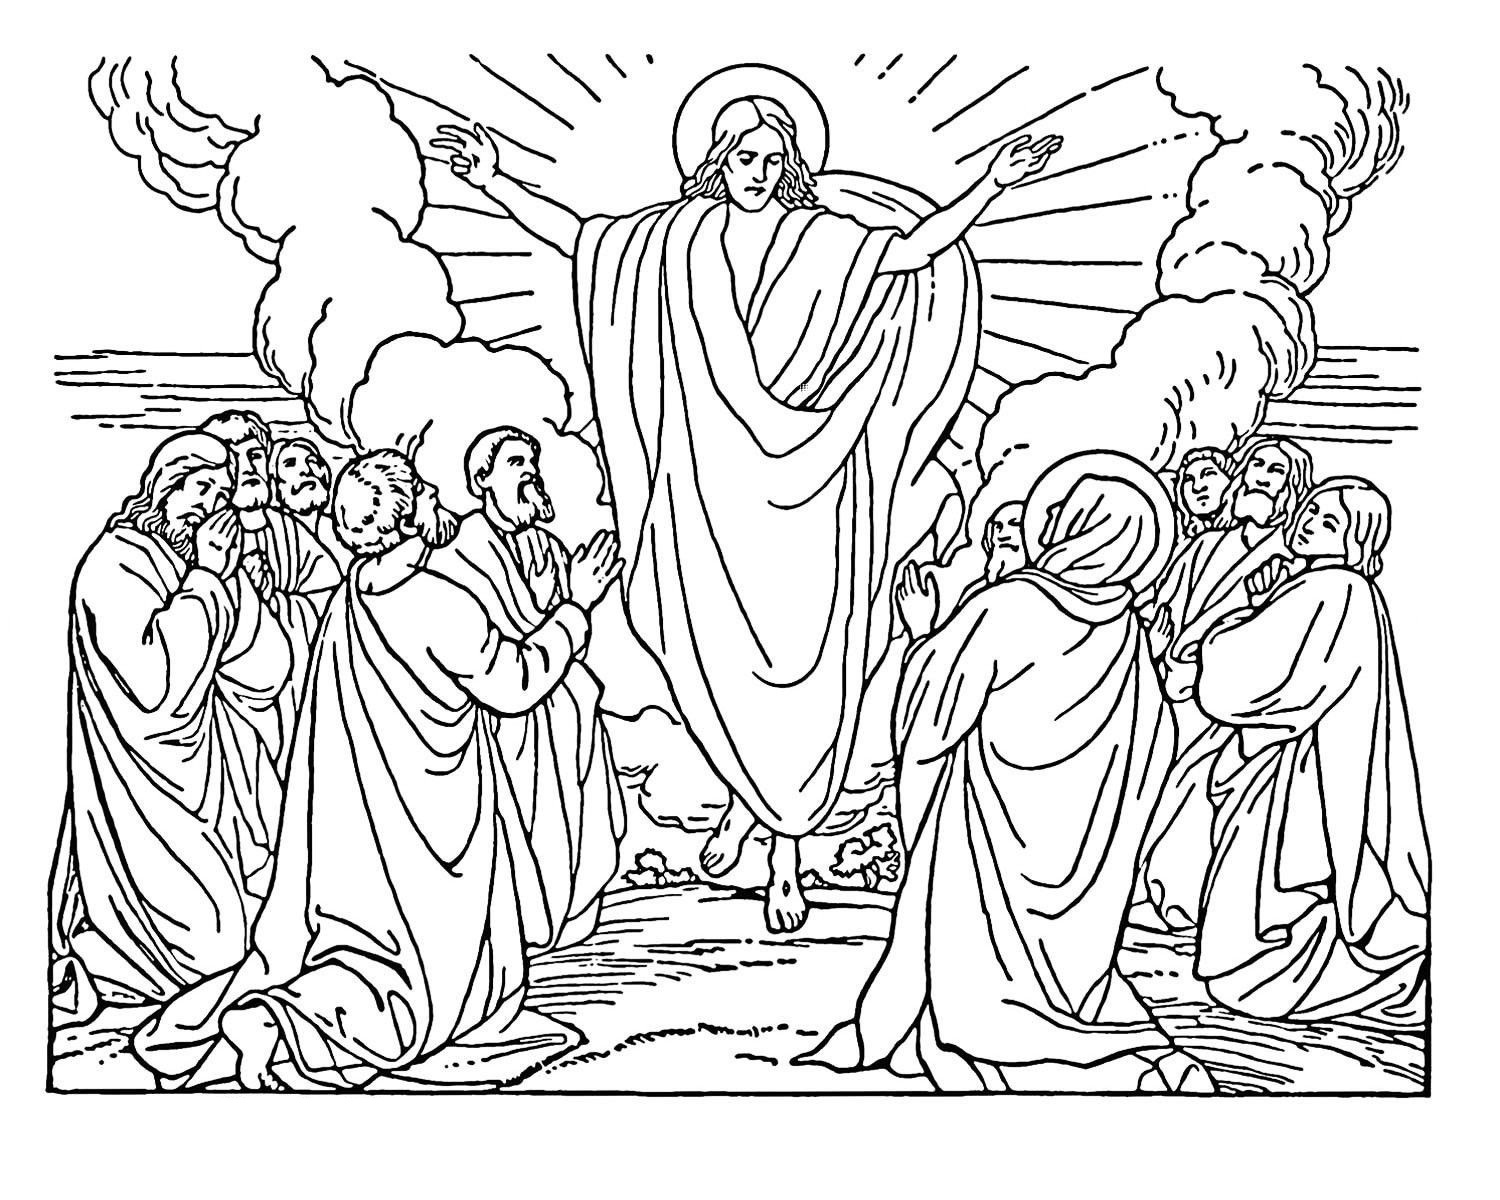 Printable coloring pages about the bible - Bible Coloring Pages For Children